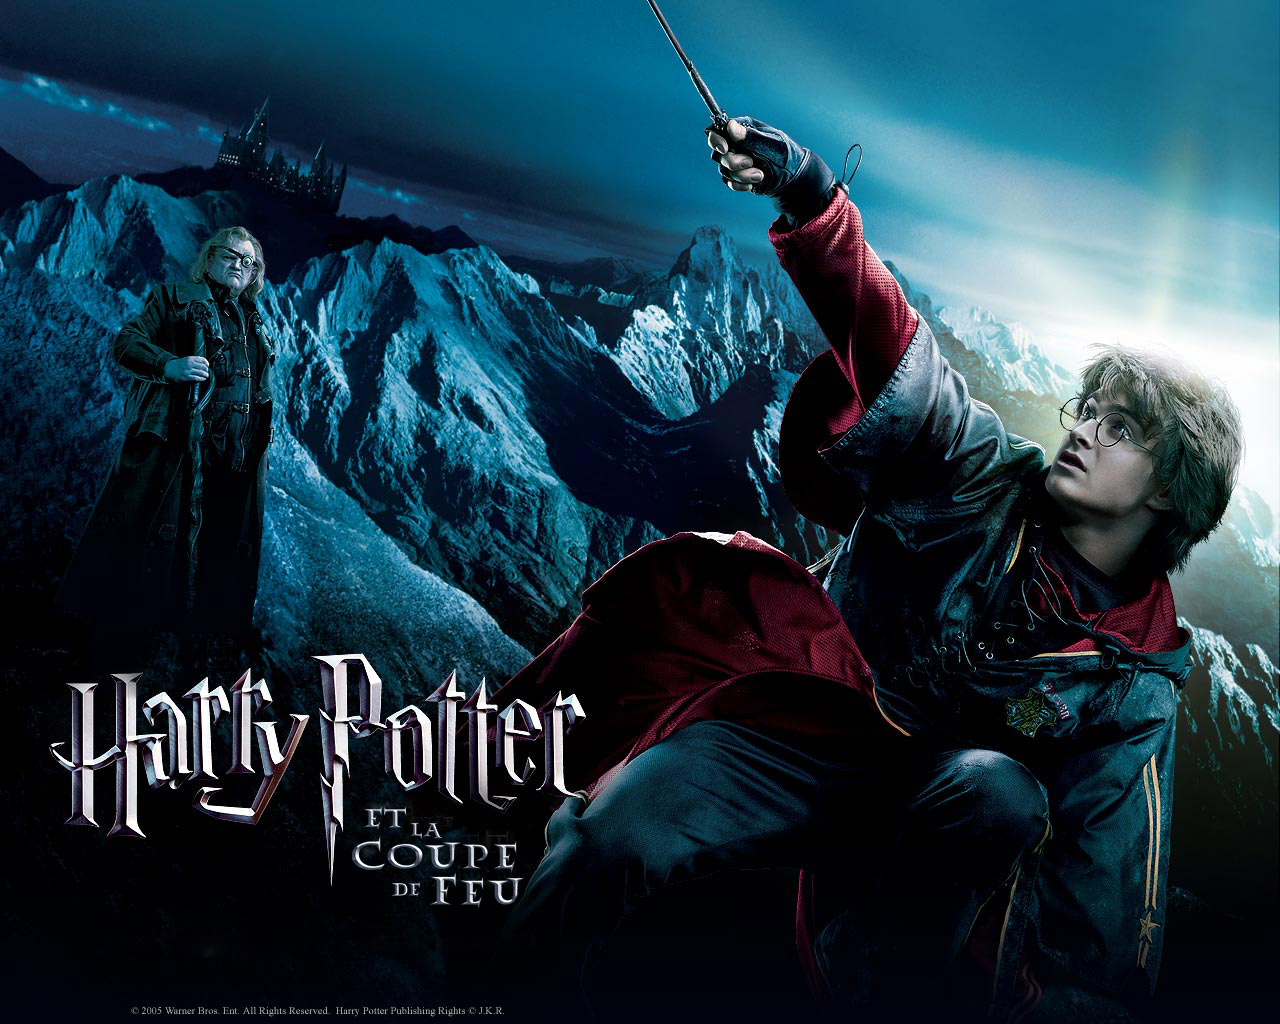 Wallpaper Harry Potter Harry Potter en action